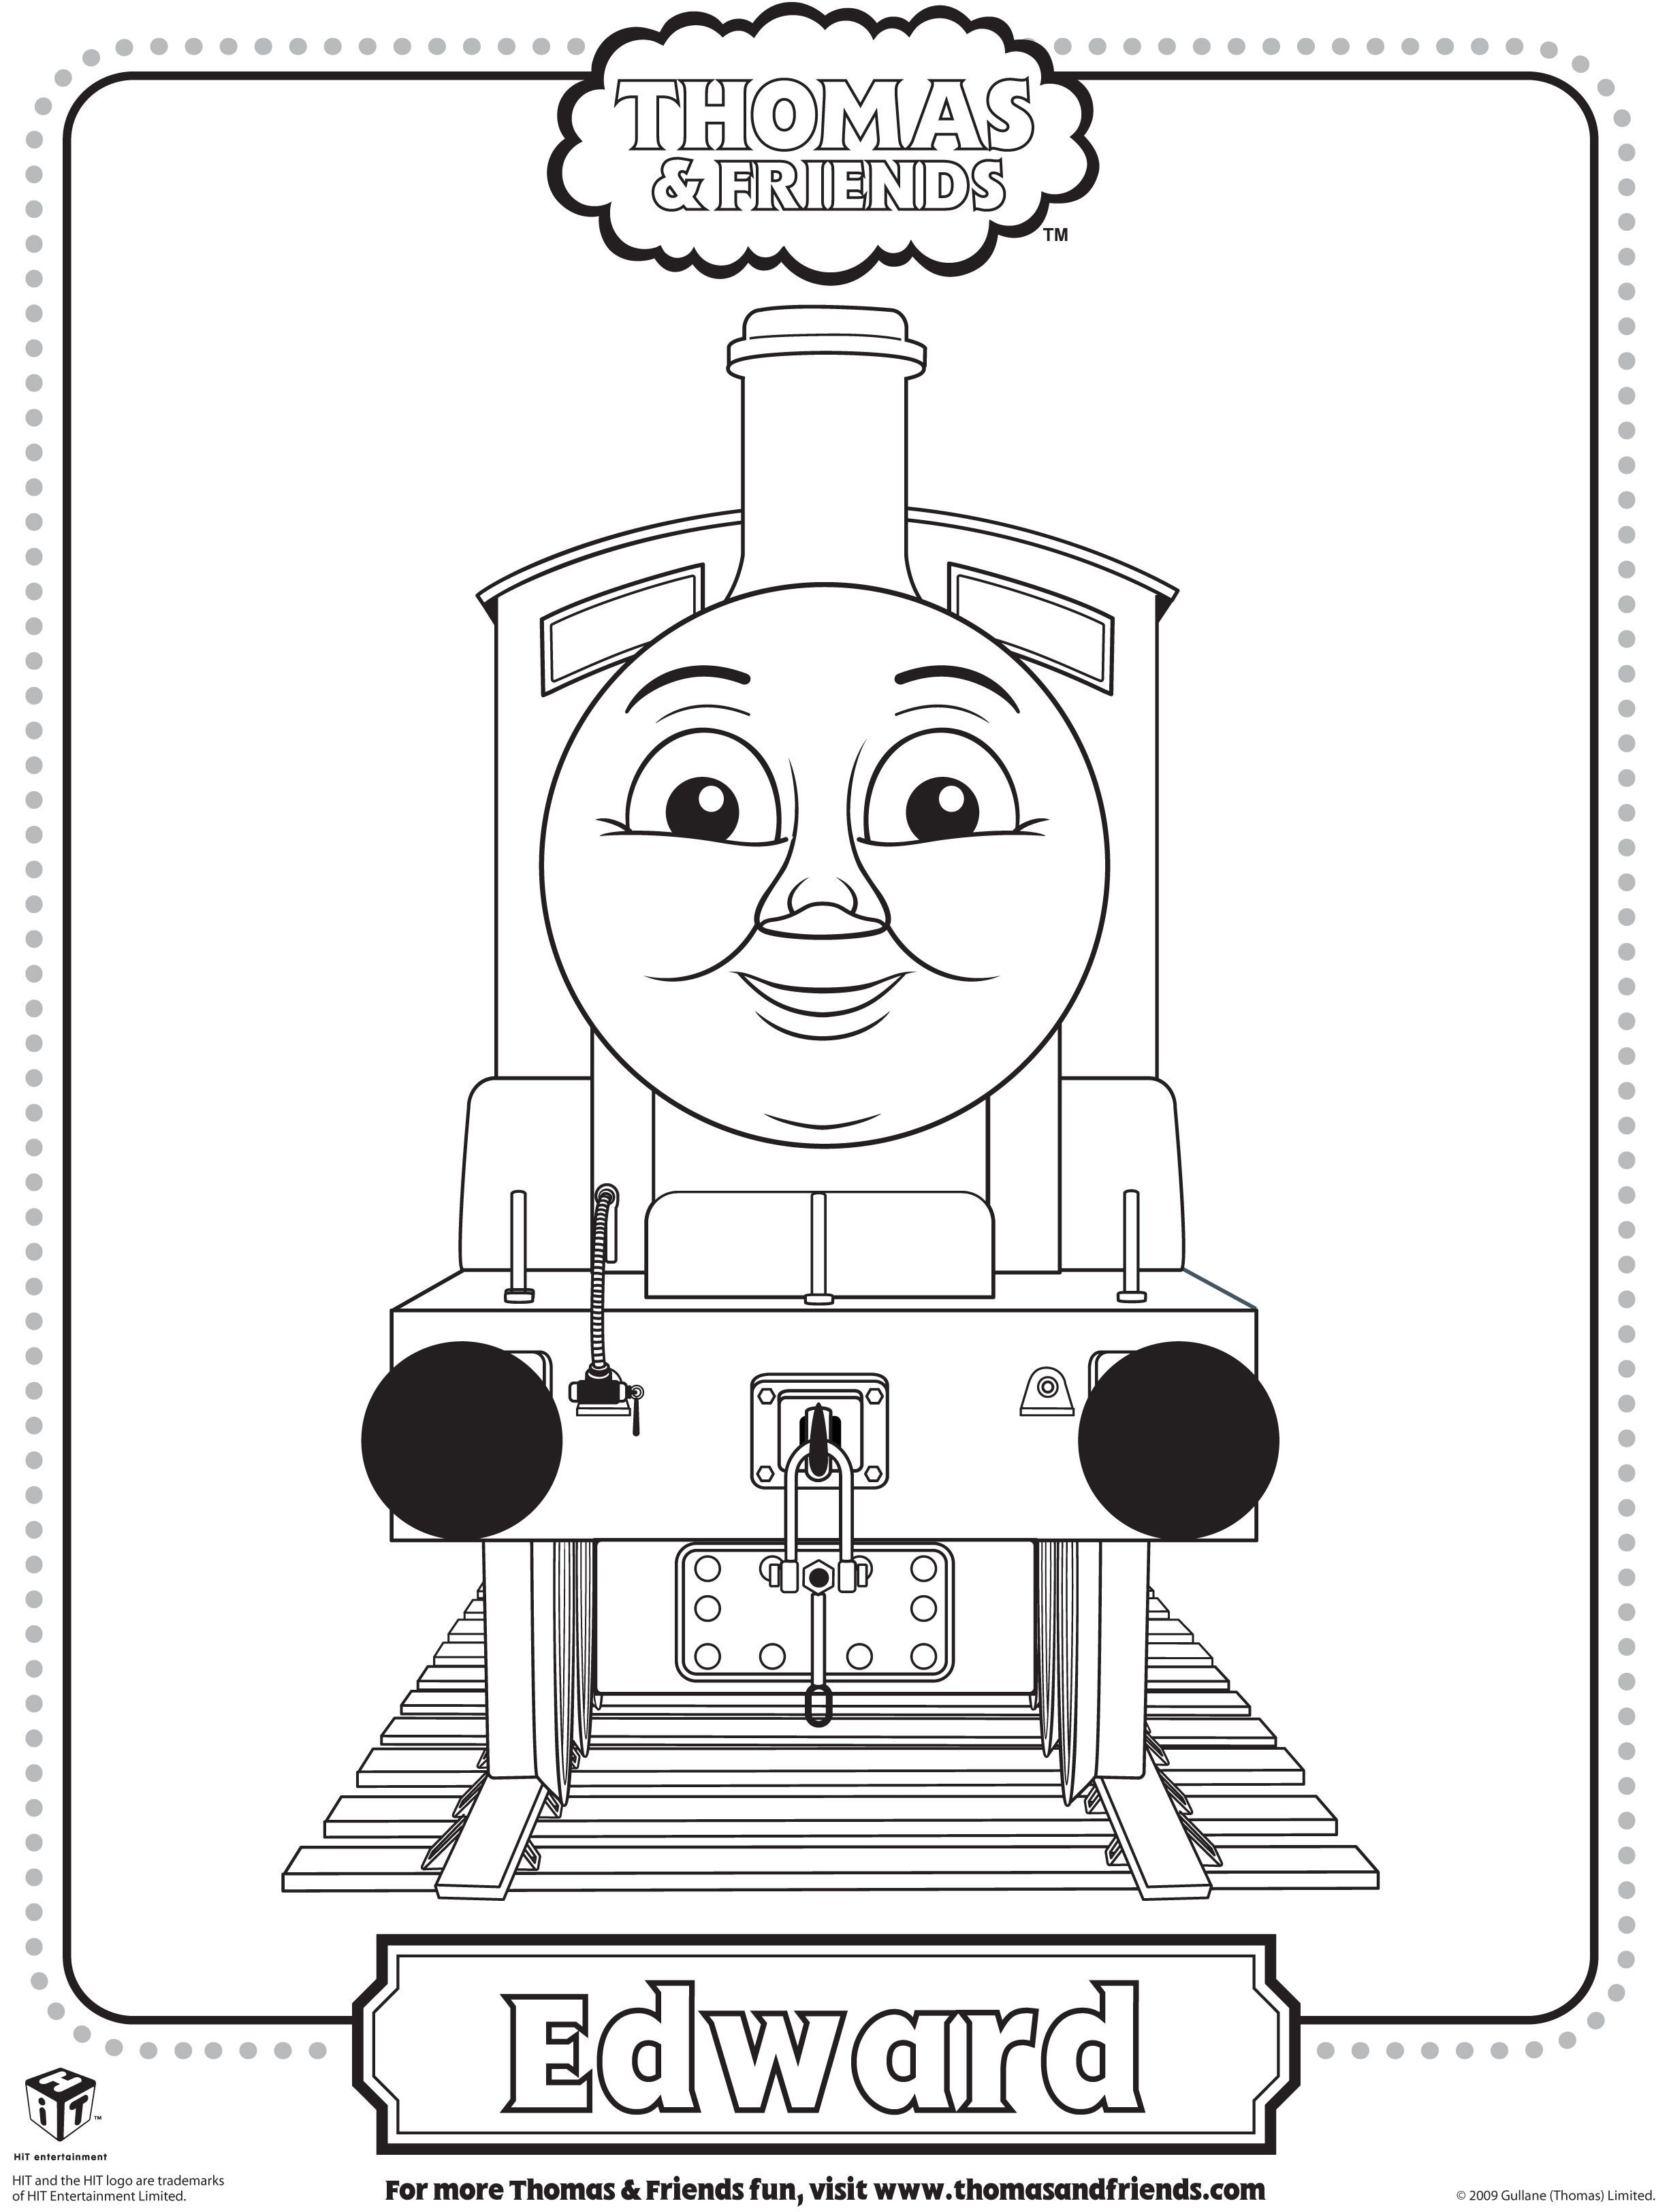 thomas and friends coloring pages james | Coloring pages - Coloring ...